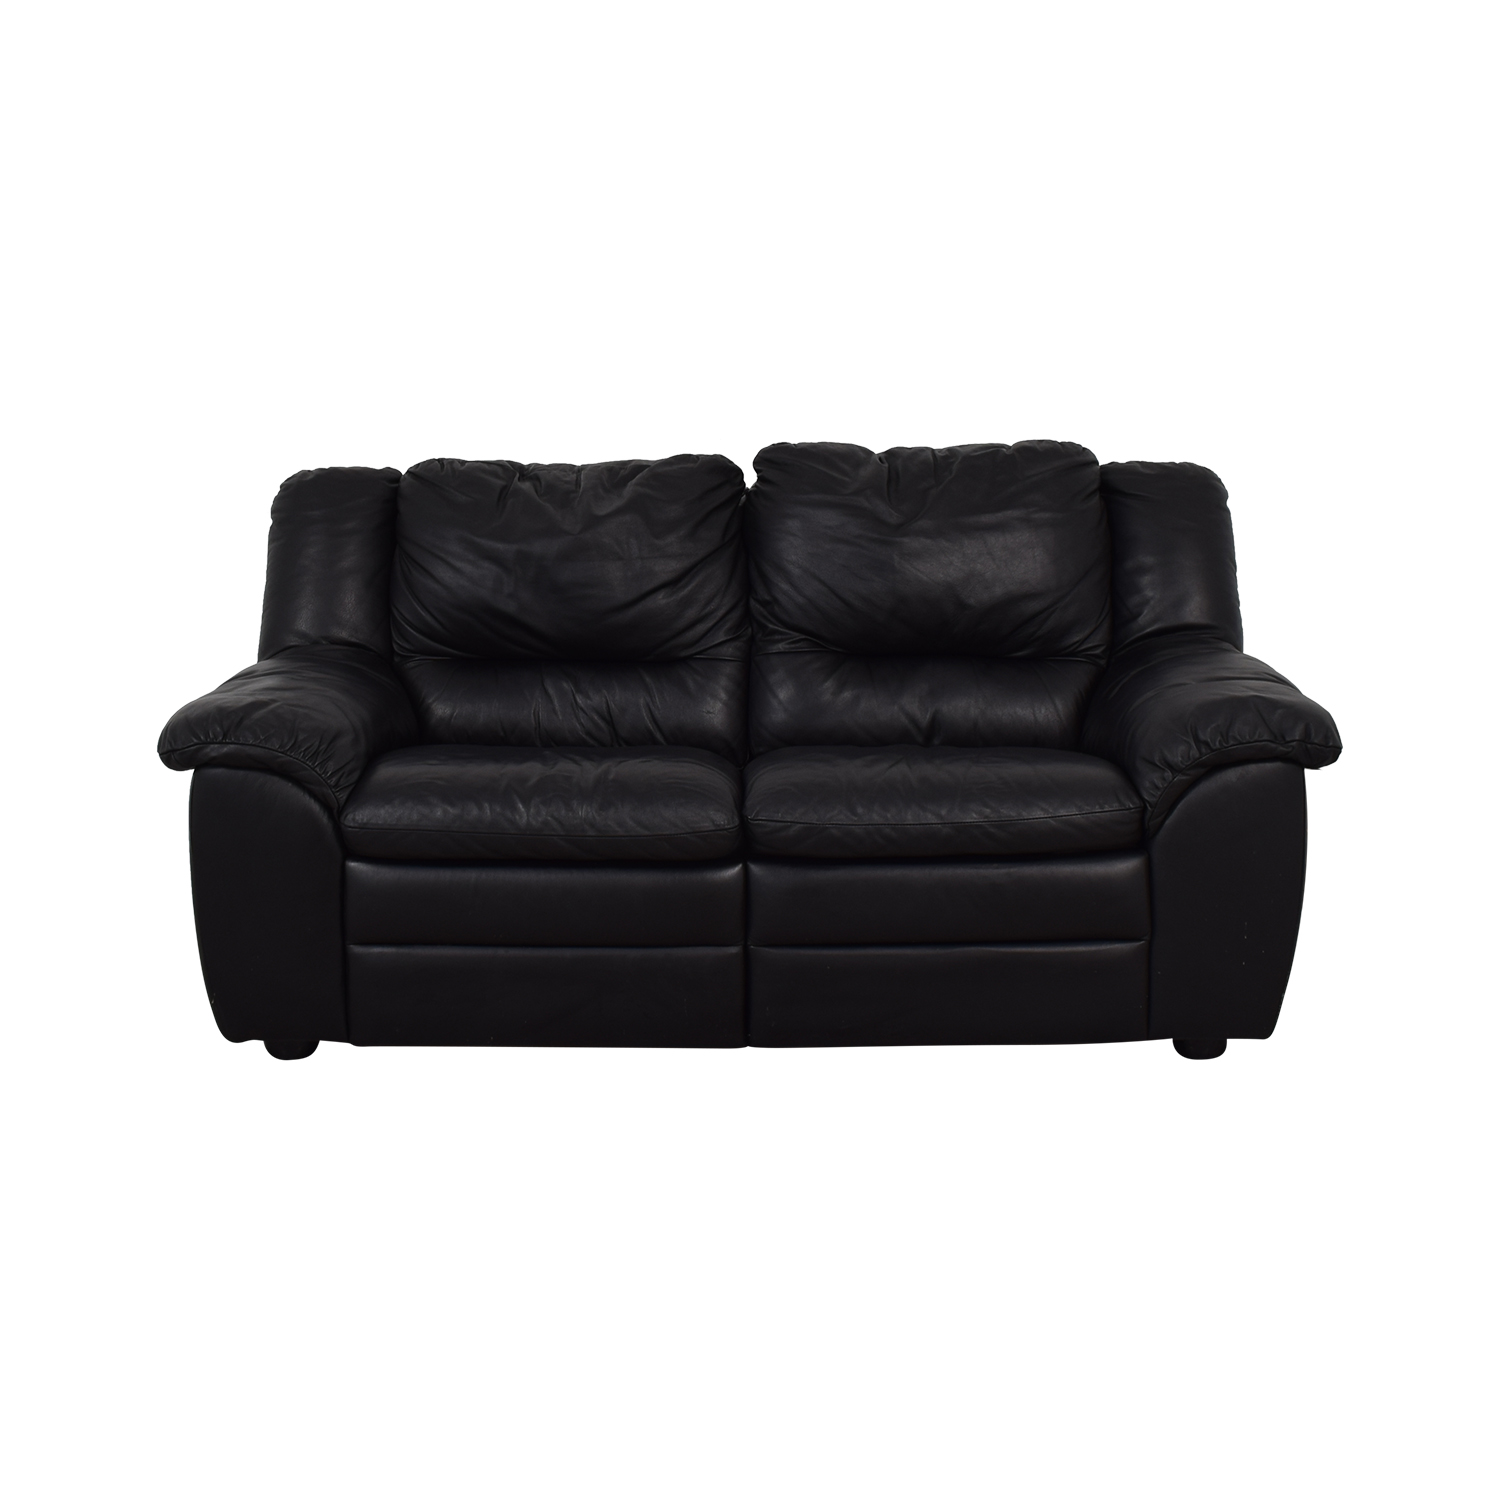 Natuzzi Natuzzi Black Leather Two-Cushion Recliner Loveseat second hand